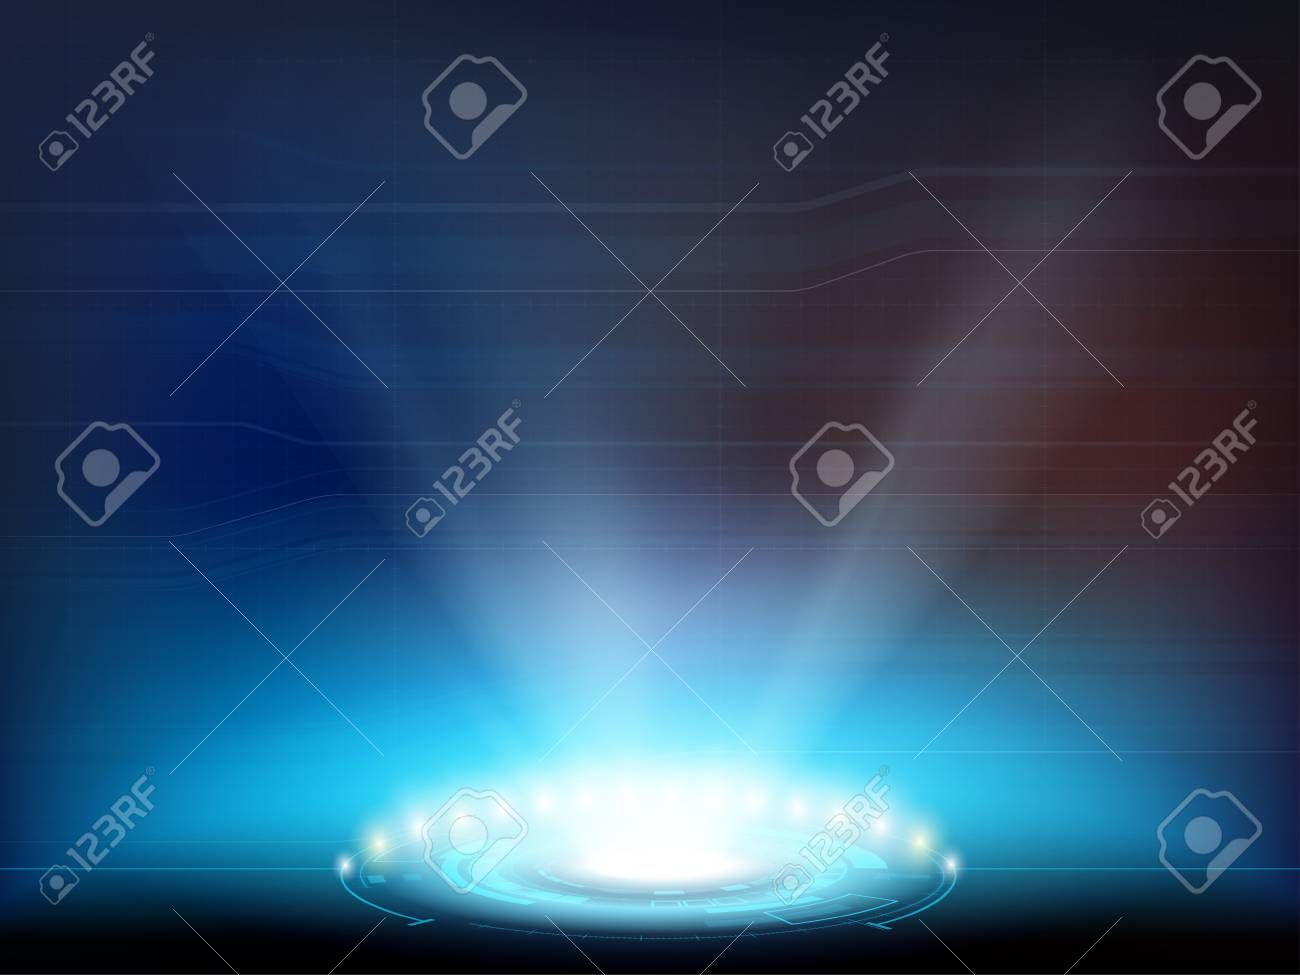 Light spotlight with HUD interface. Futuristic projector or portal for teleportation. Vector background. - 125867385